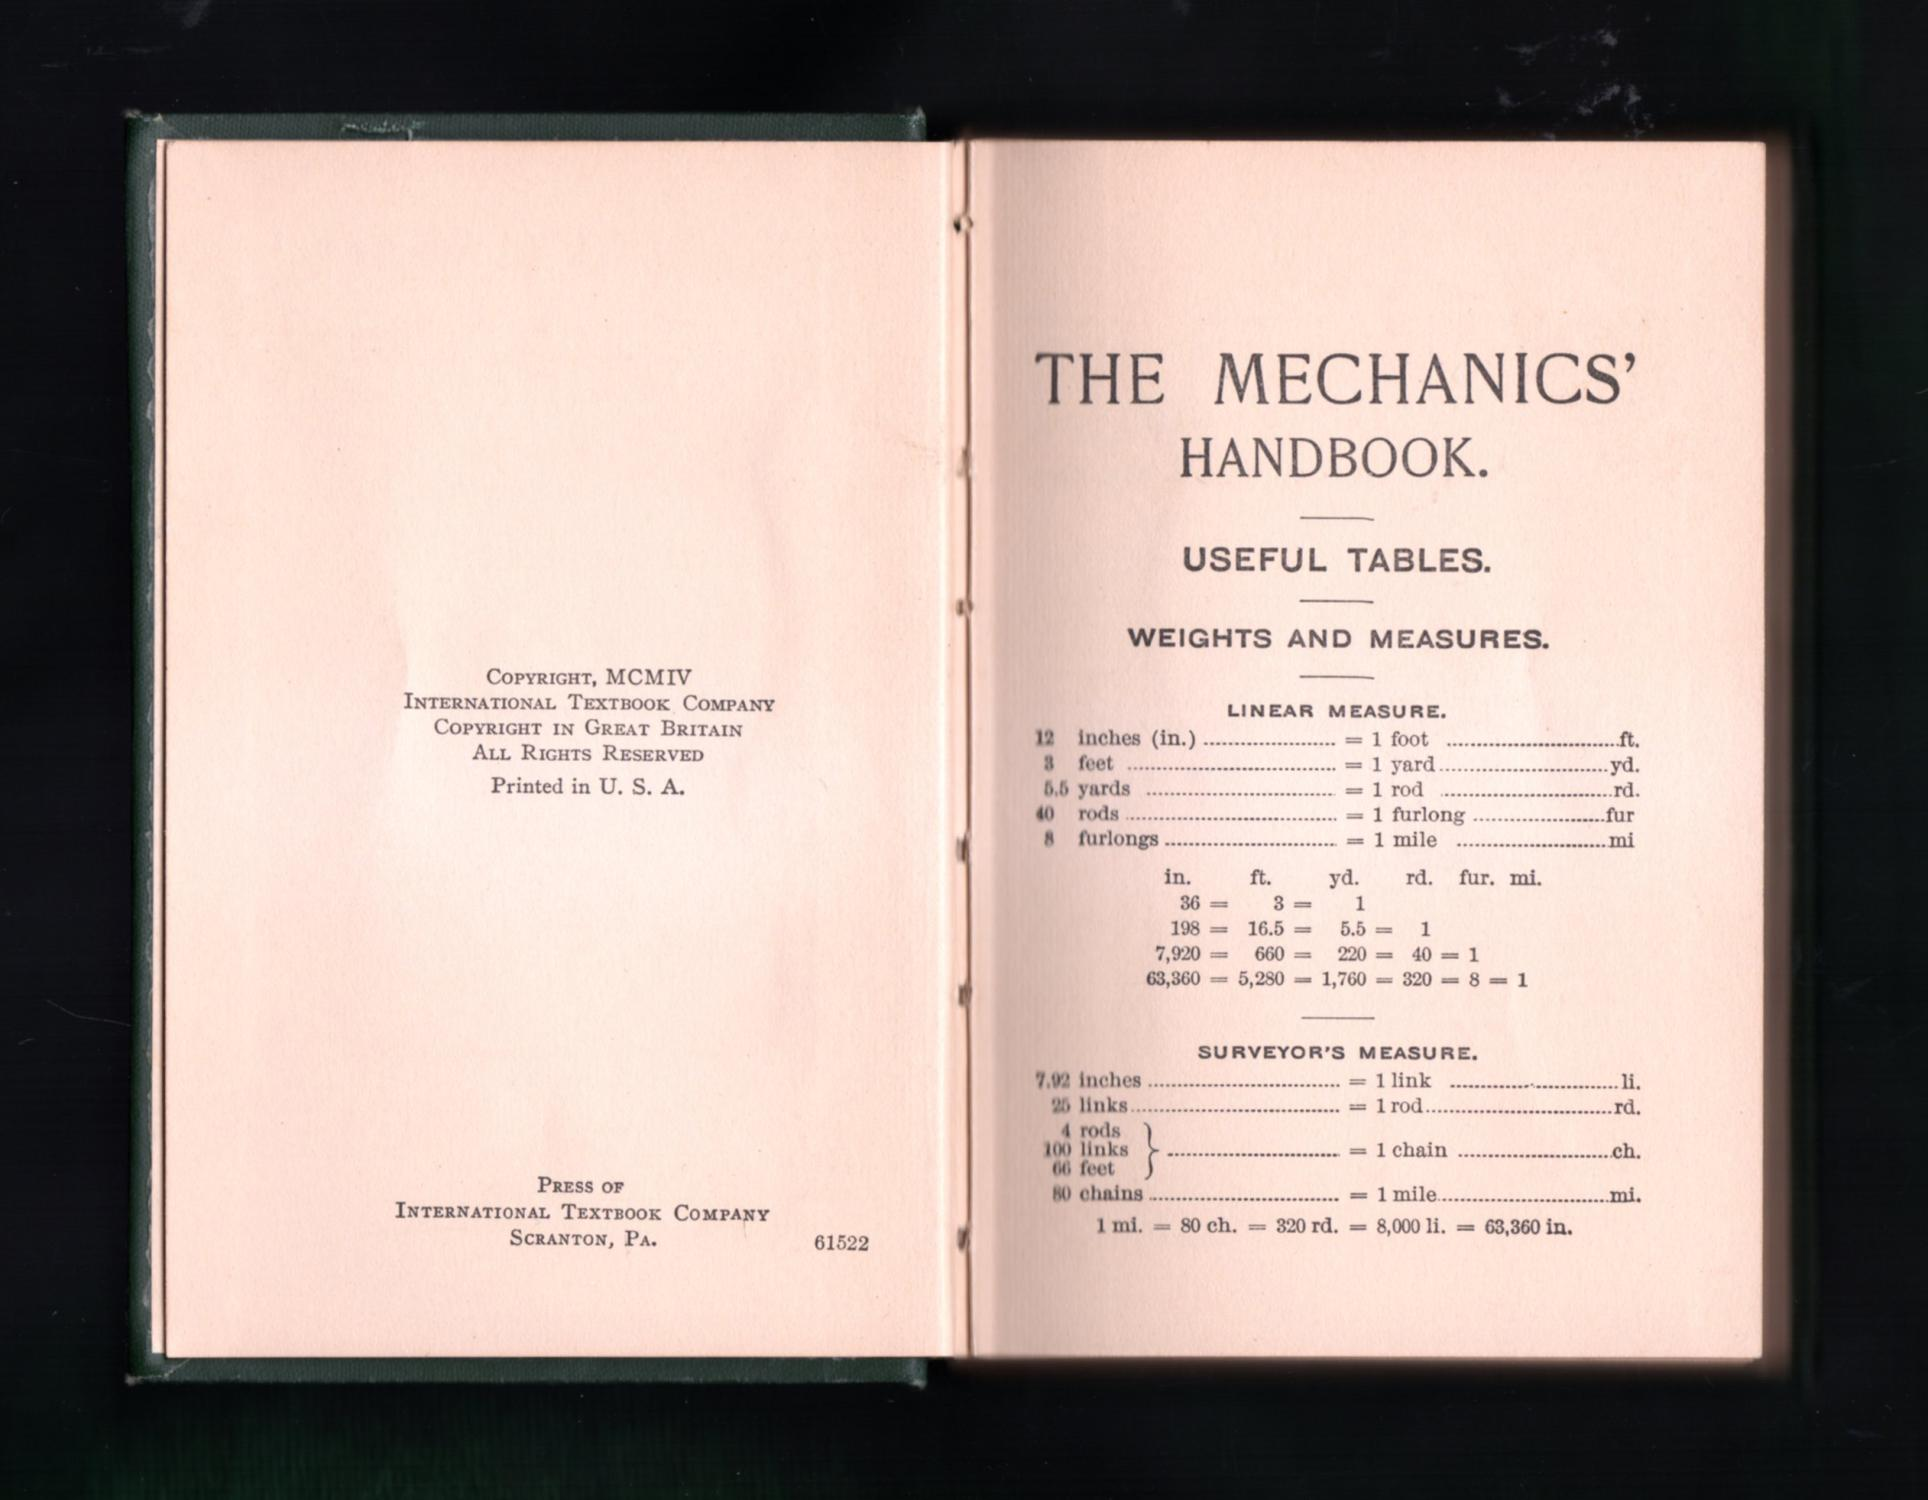 The Mechanics' Handbook - A Convenient